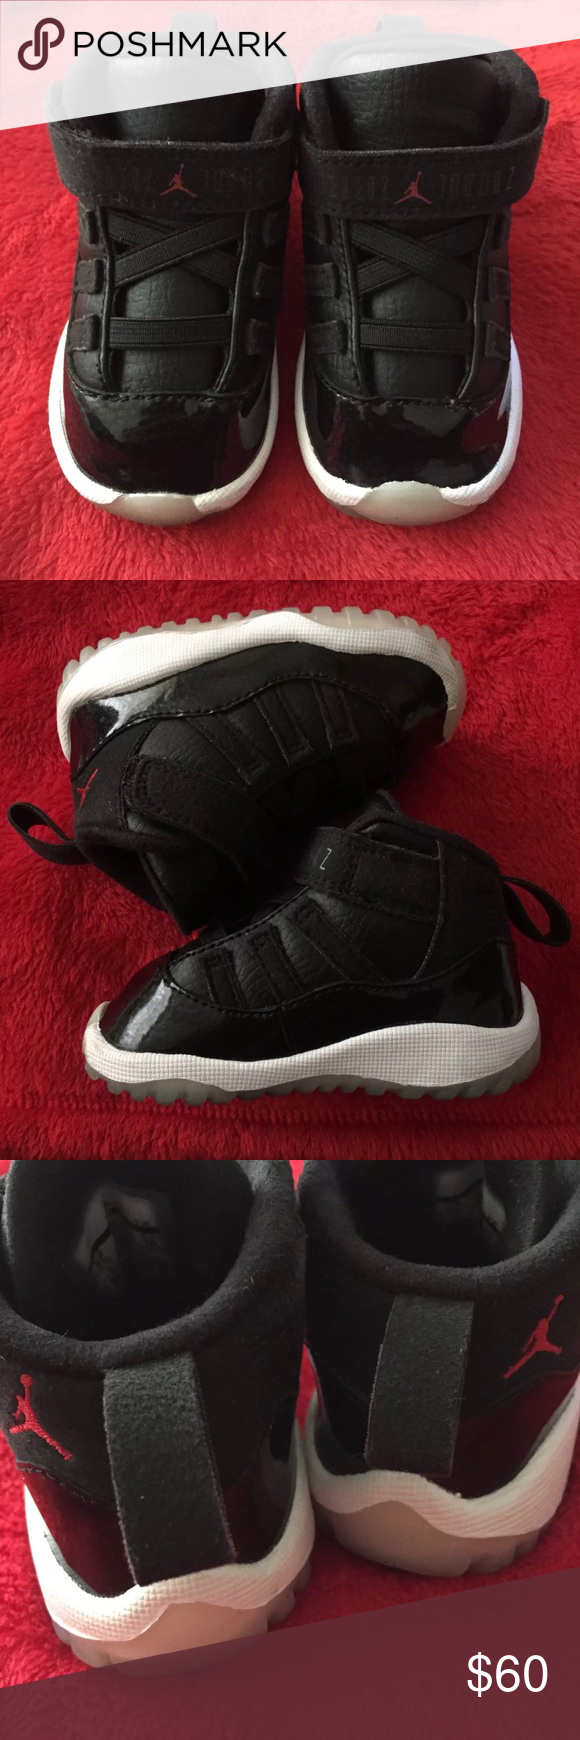 size 40 540a8 4482f Toddler Jordan 11 72-10 Size 4C (Toddler) 9/10 Box included ...